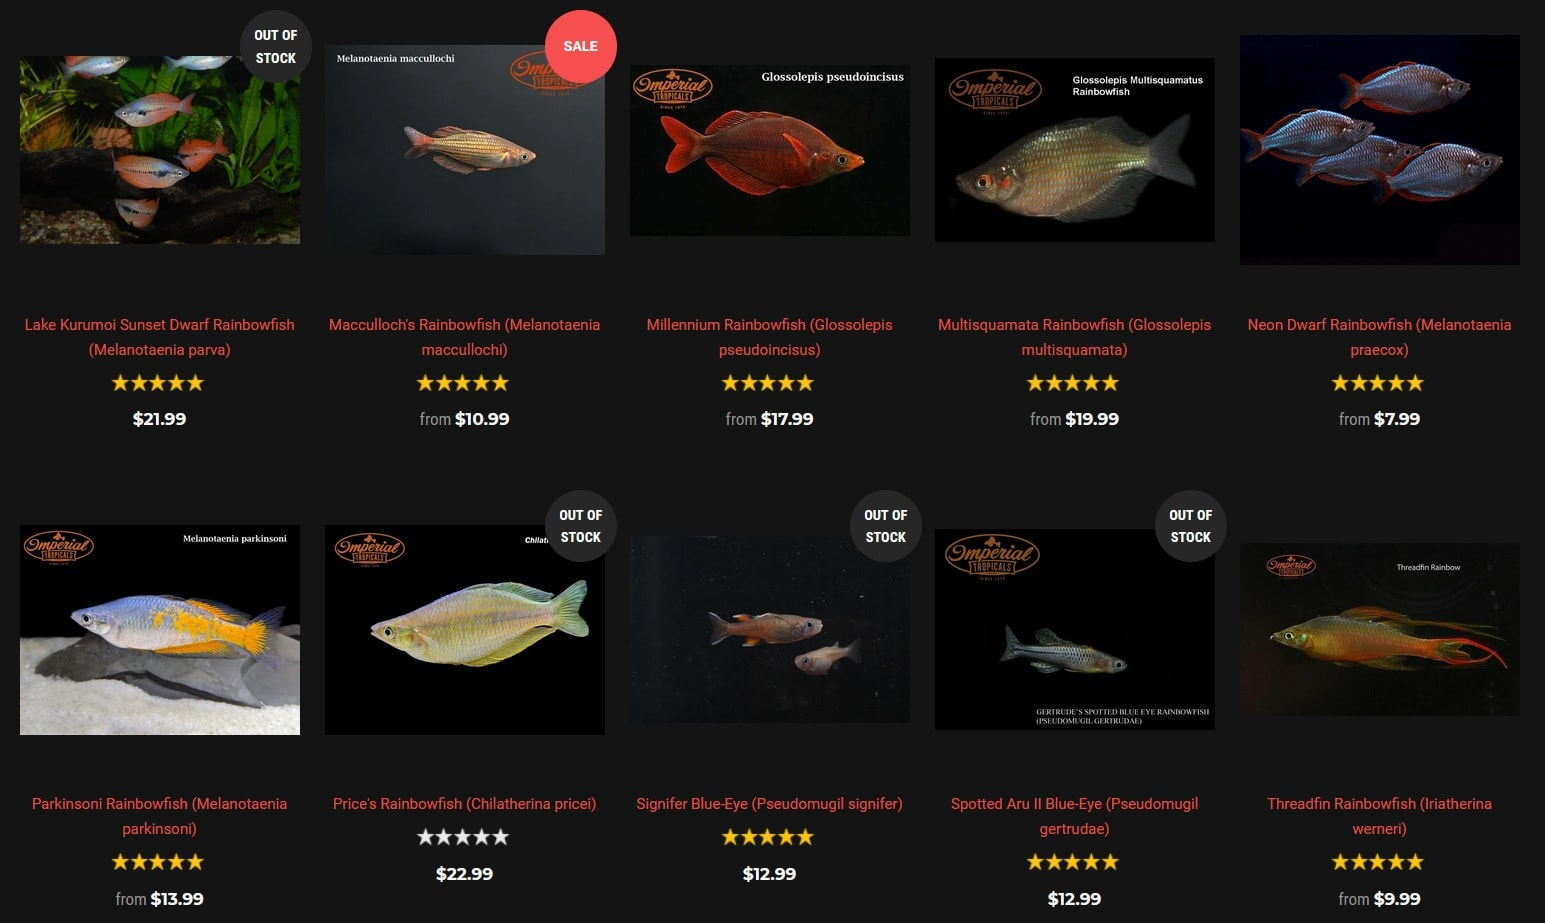 imperialtropicals has a good selection of rainbowfish to buy from